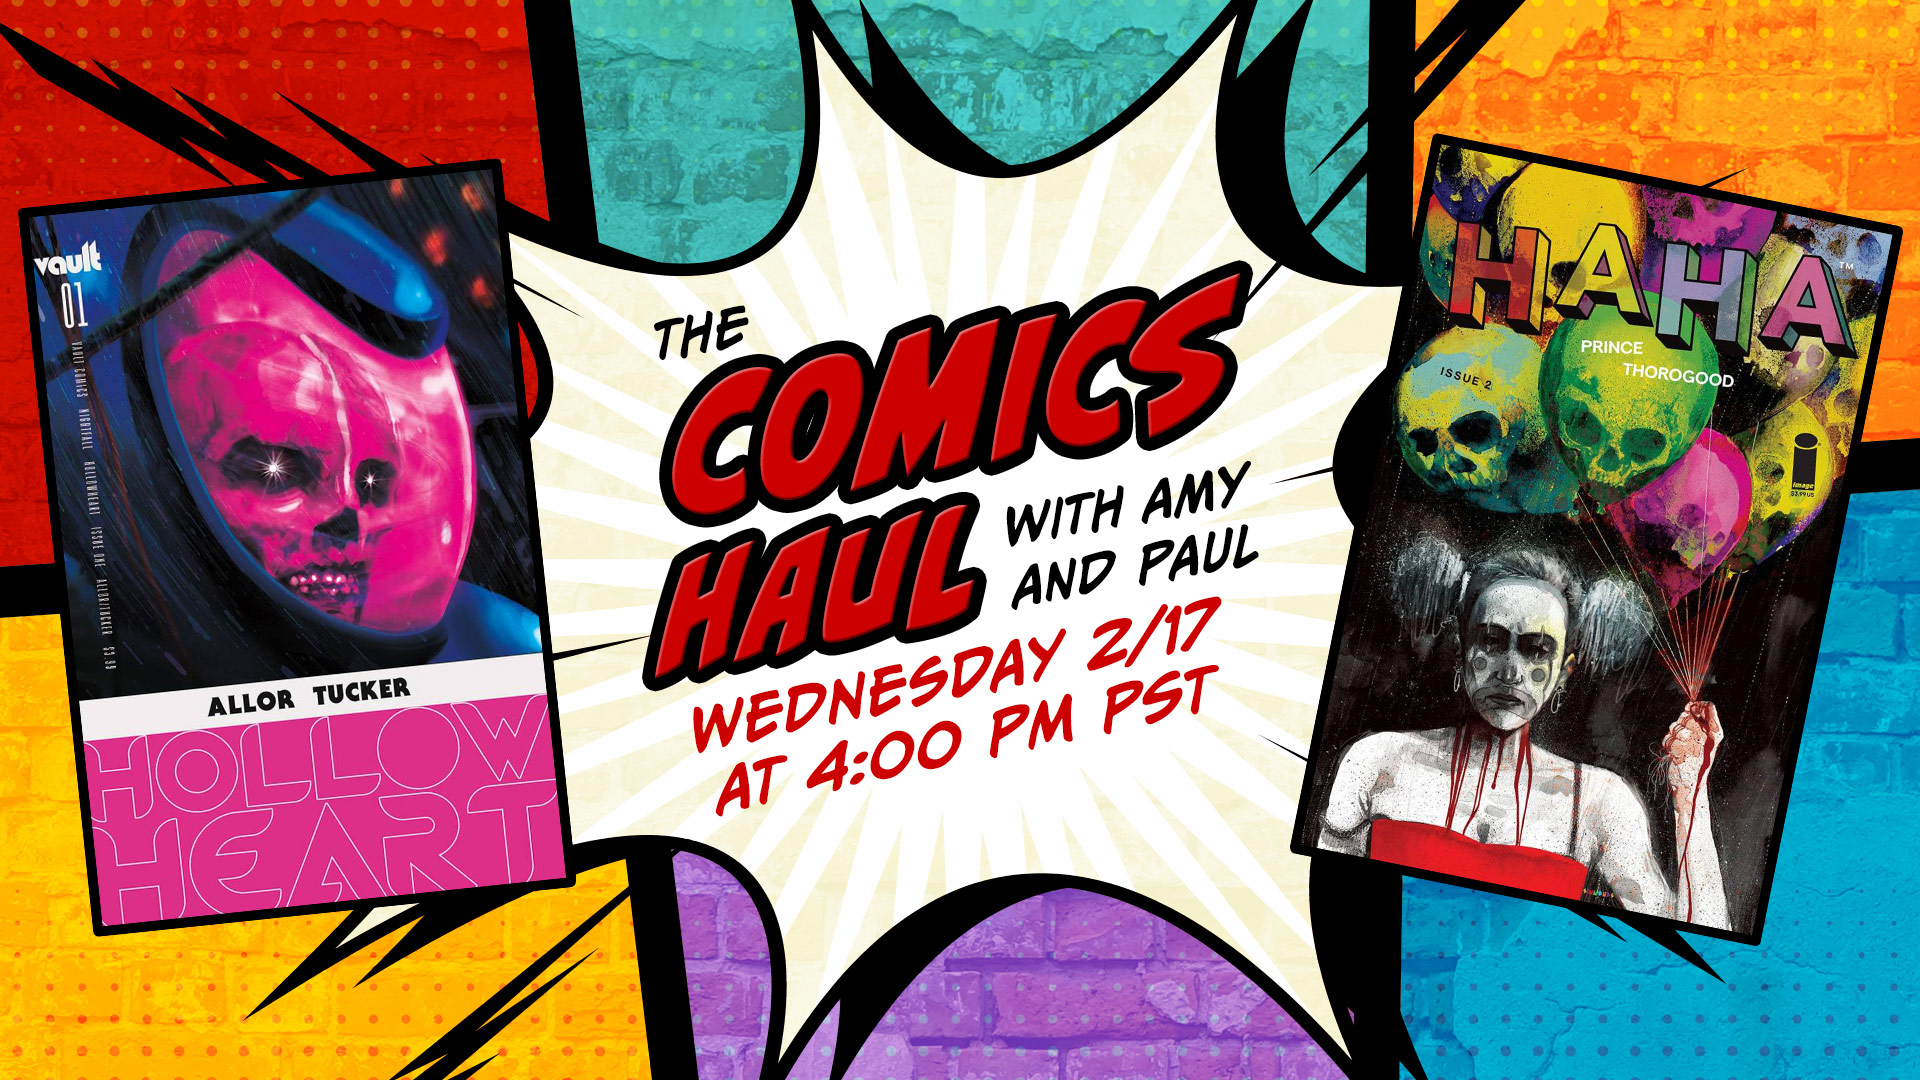 Watch The Comics Haul on Feb 17, 2021 at 4 PM PST